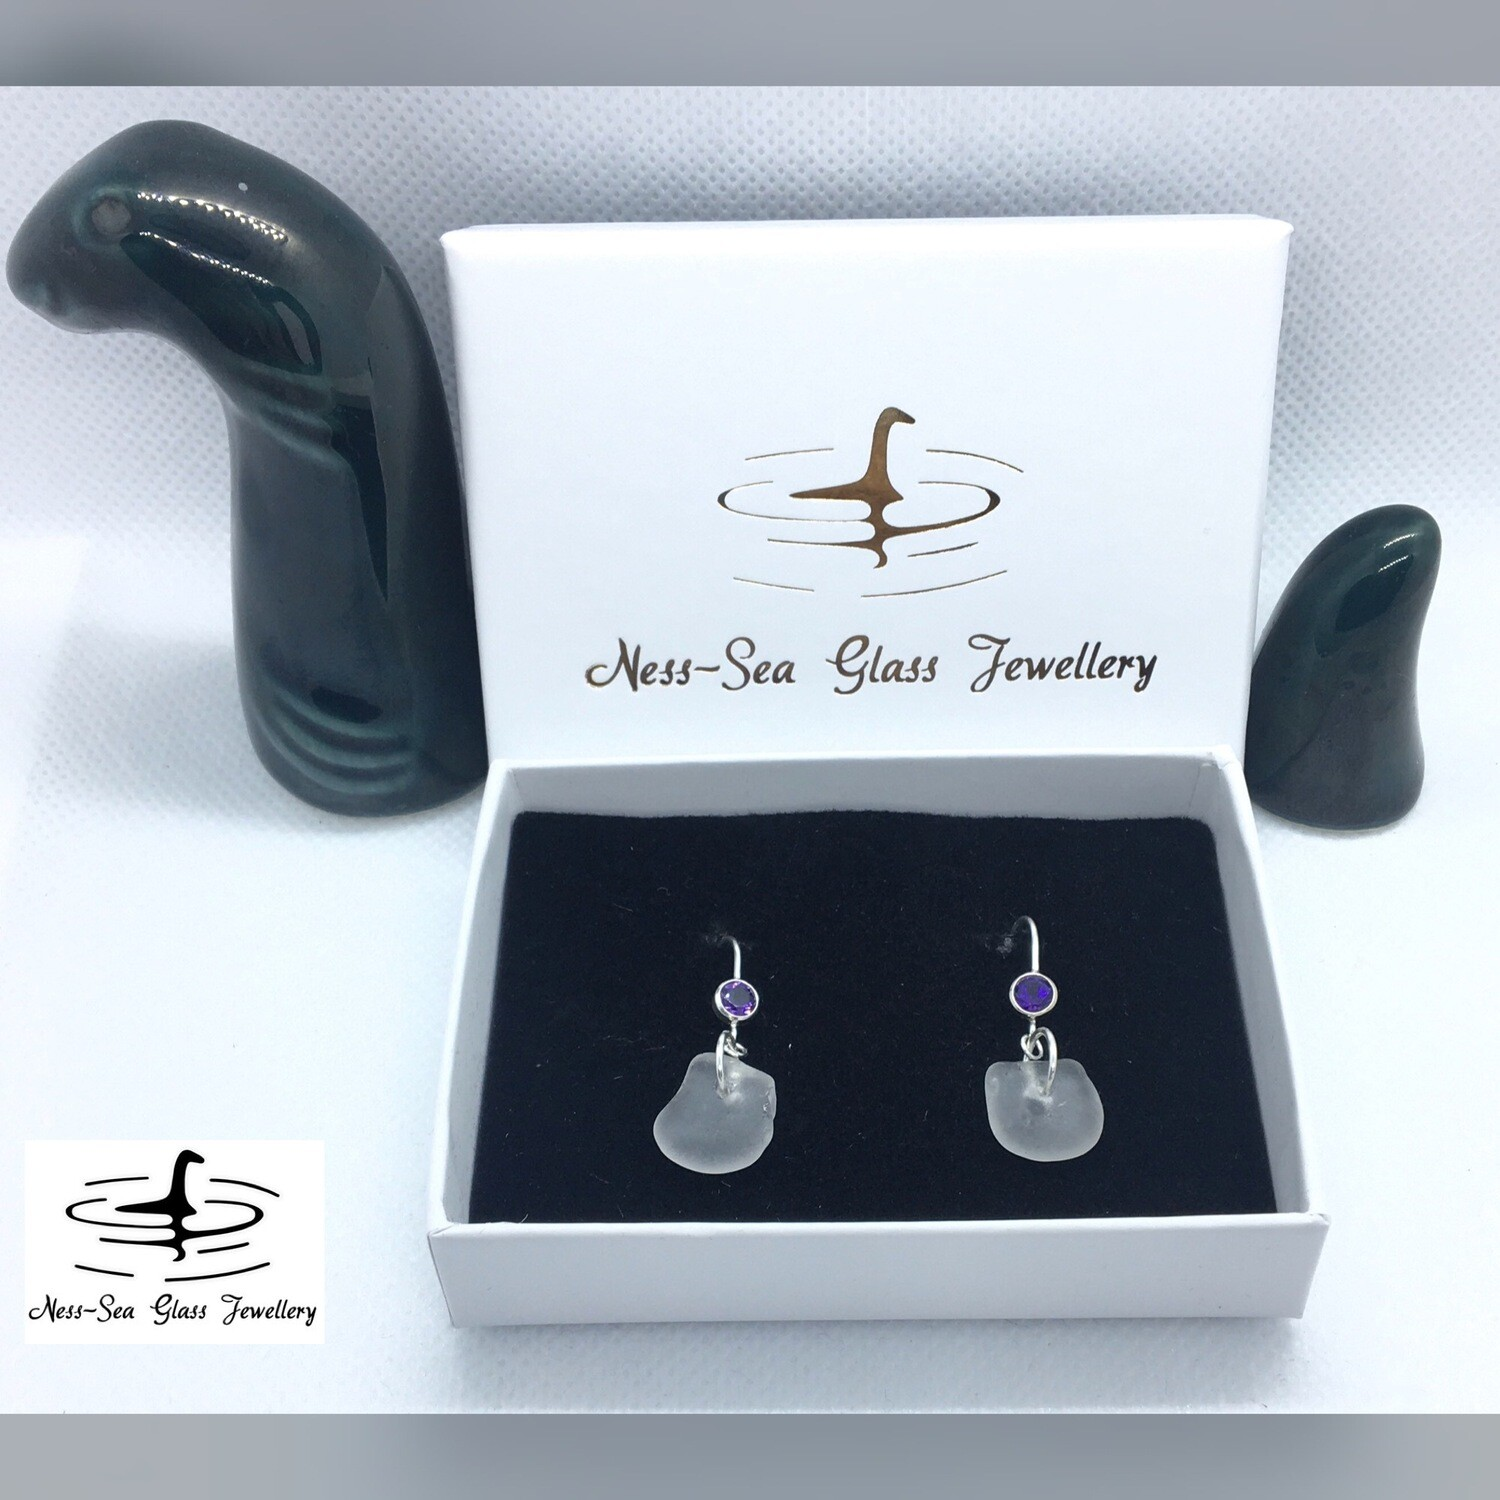 Clear Loch Ness Sea Glass Sterling Silver Hook Earrings with Purple Amethyst Gemstone Detail.